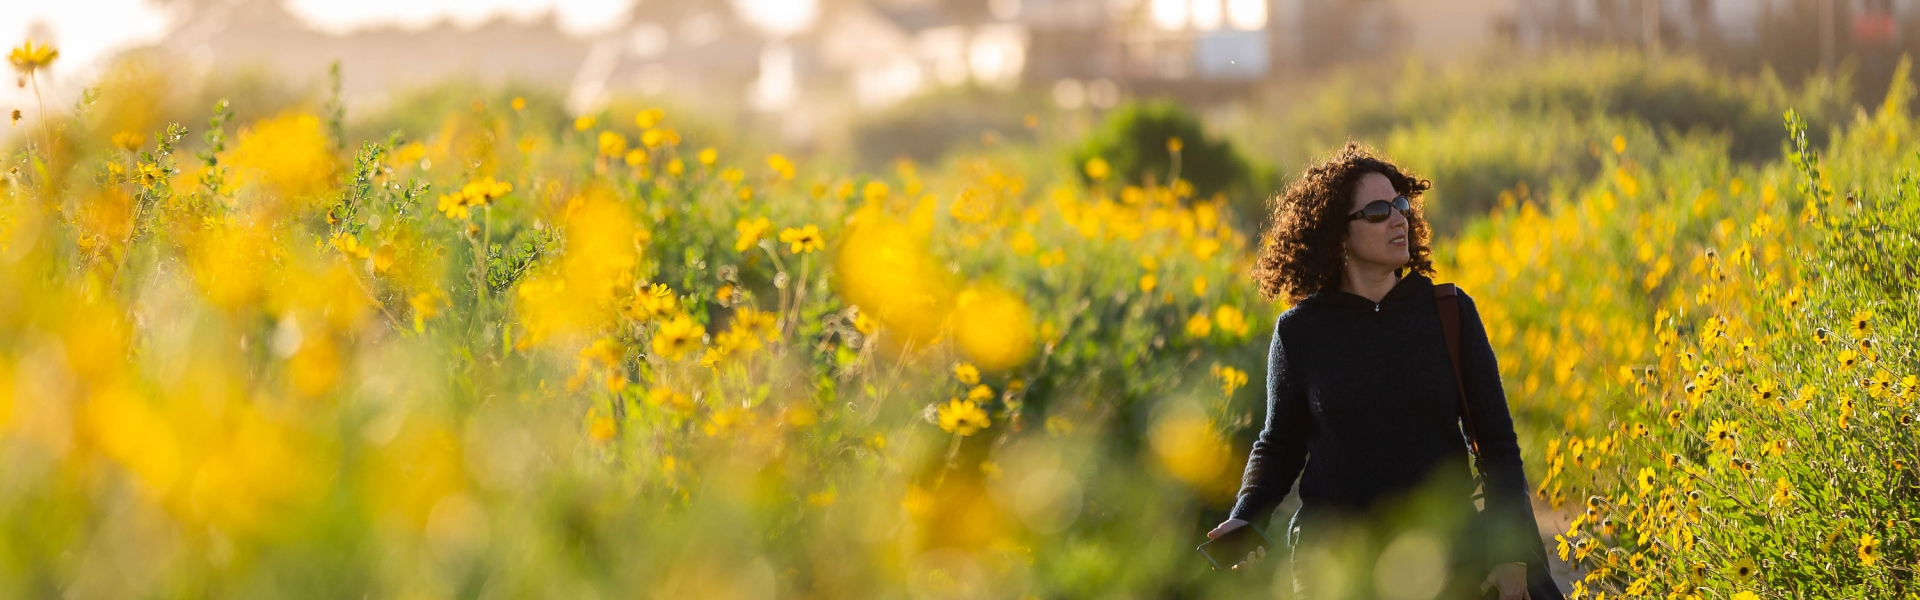 Woman walking on path surrounded by yellow flowers